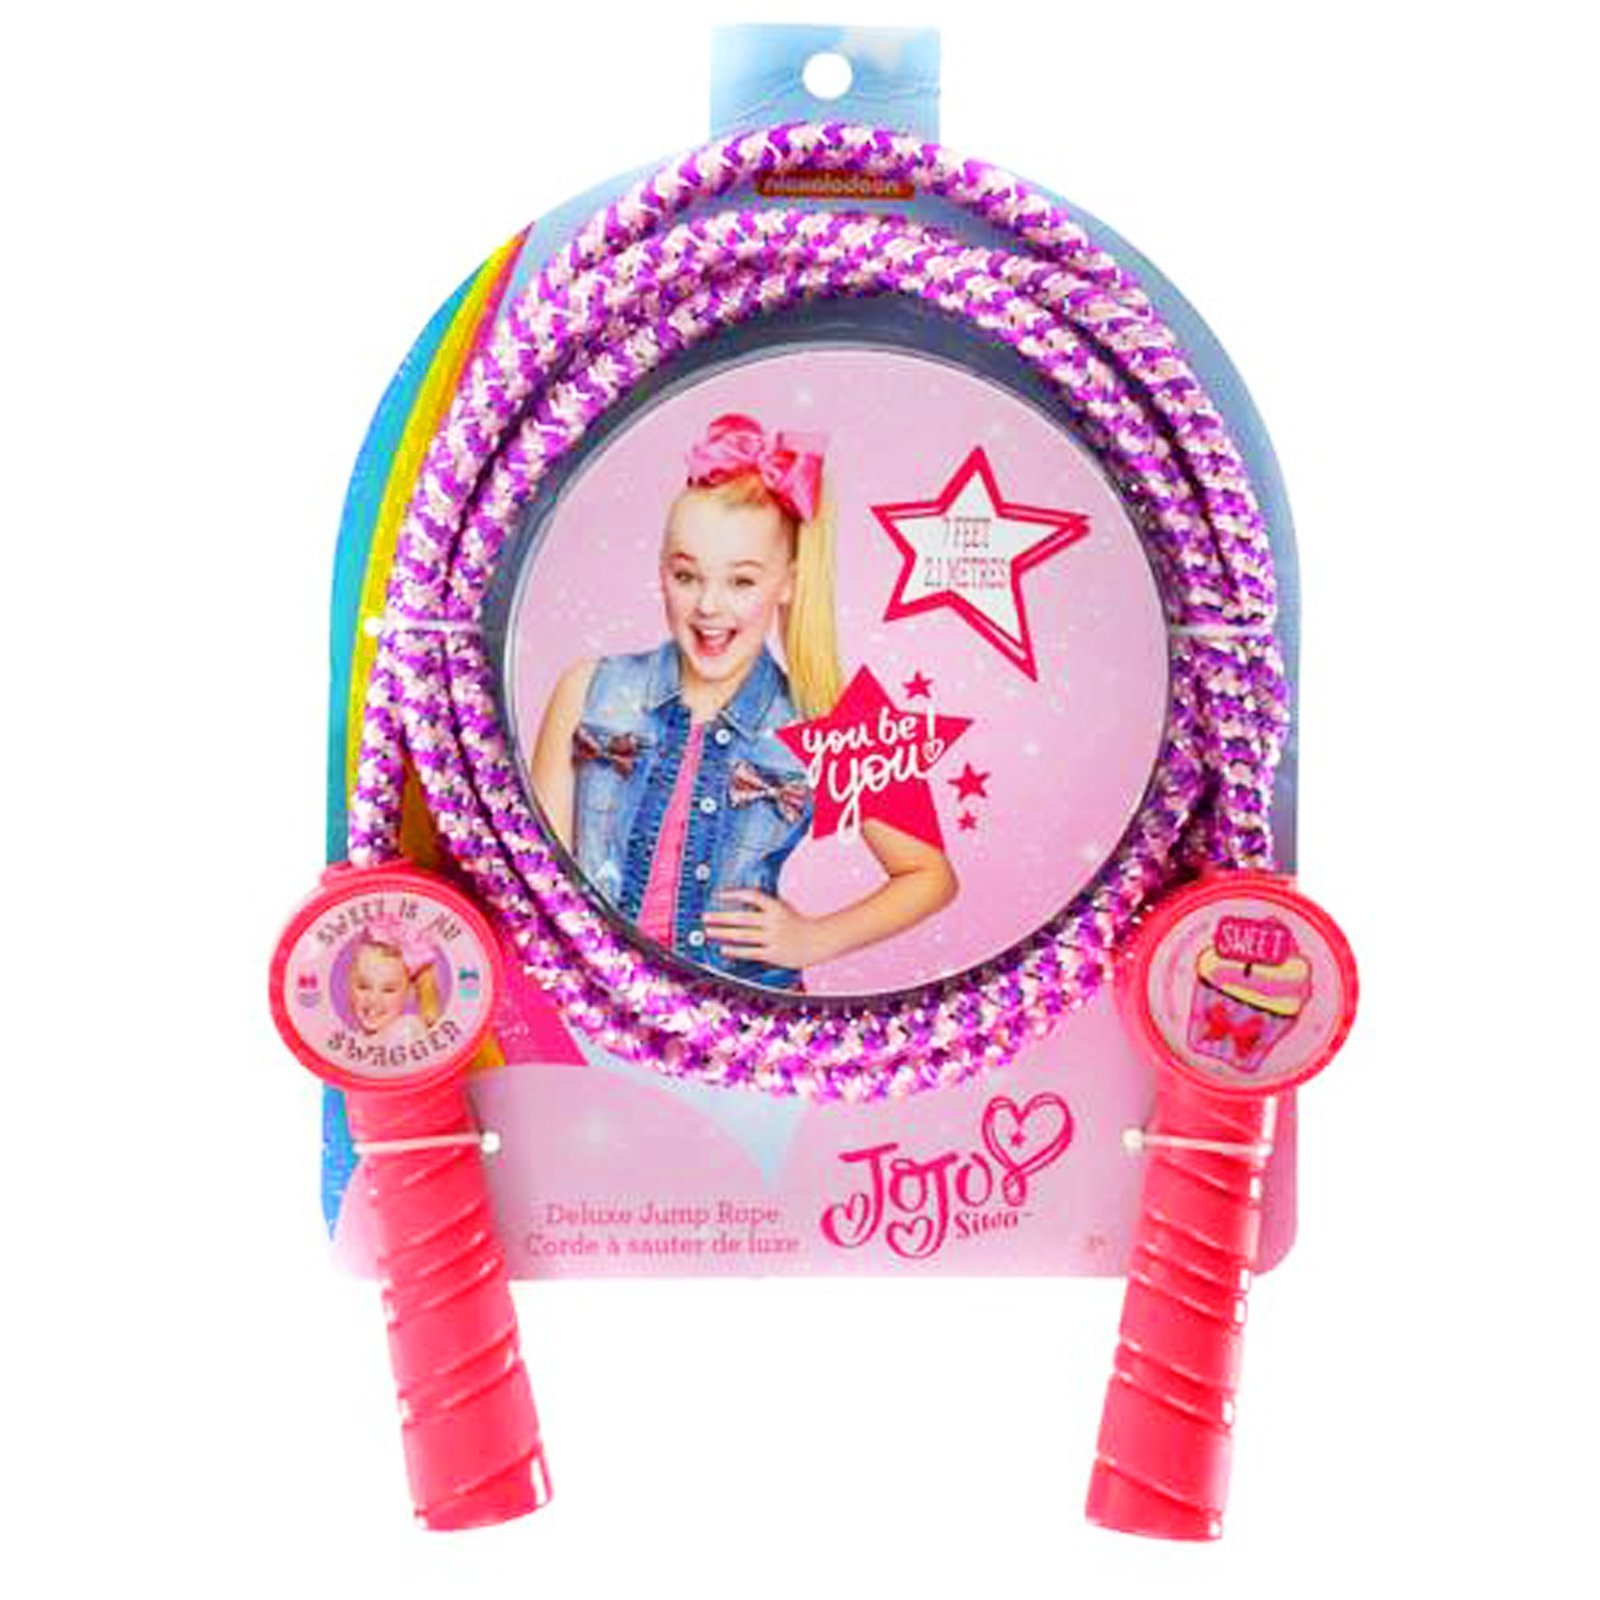 JoJo Siwa Girls Deluxe Jump Rope Molded Handles 7 Feet Promotes Exercise - Pink